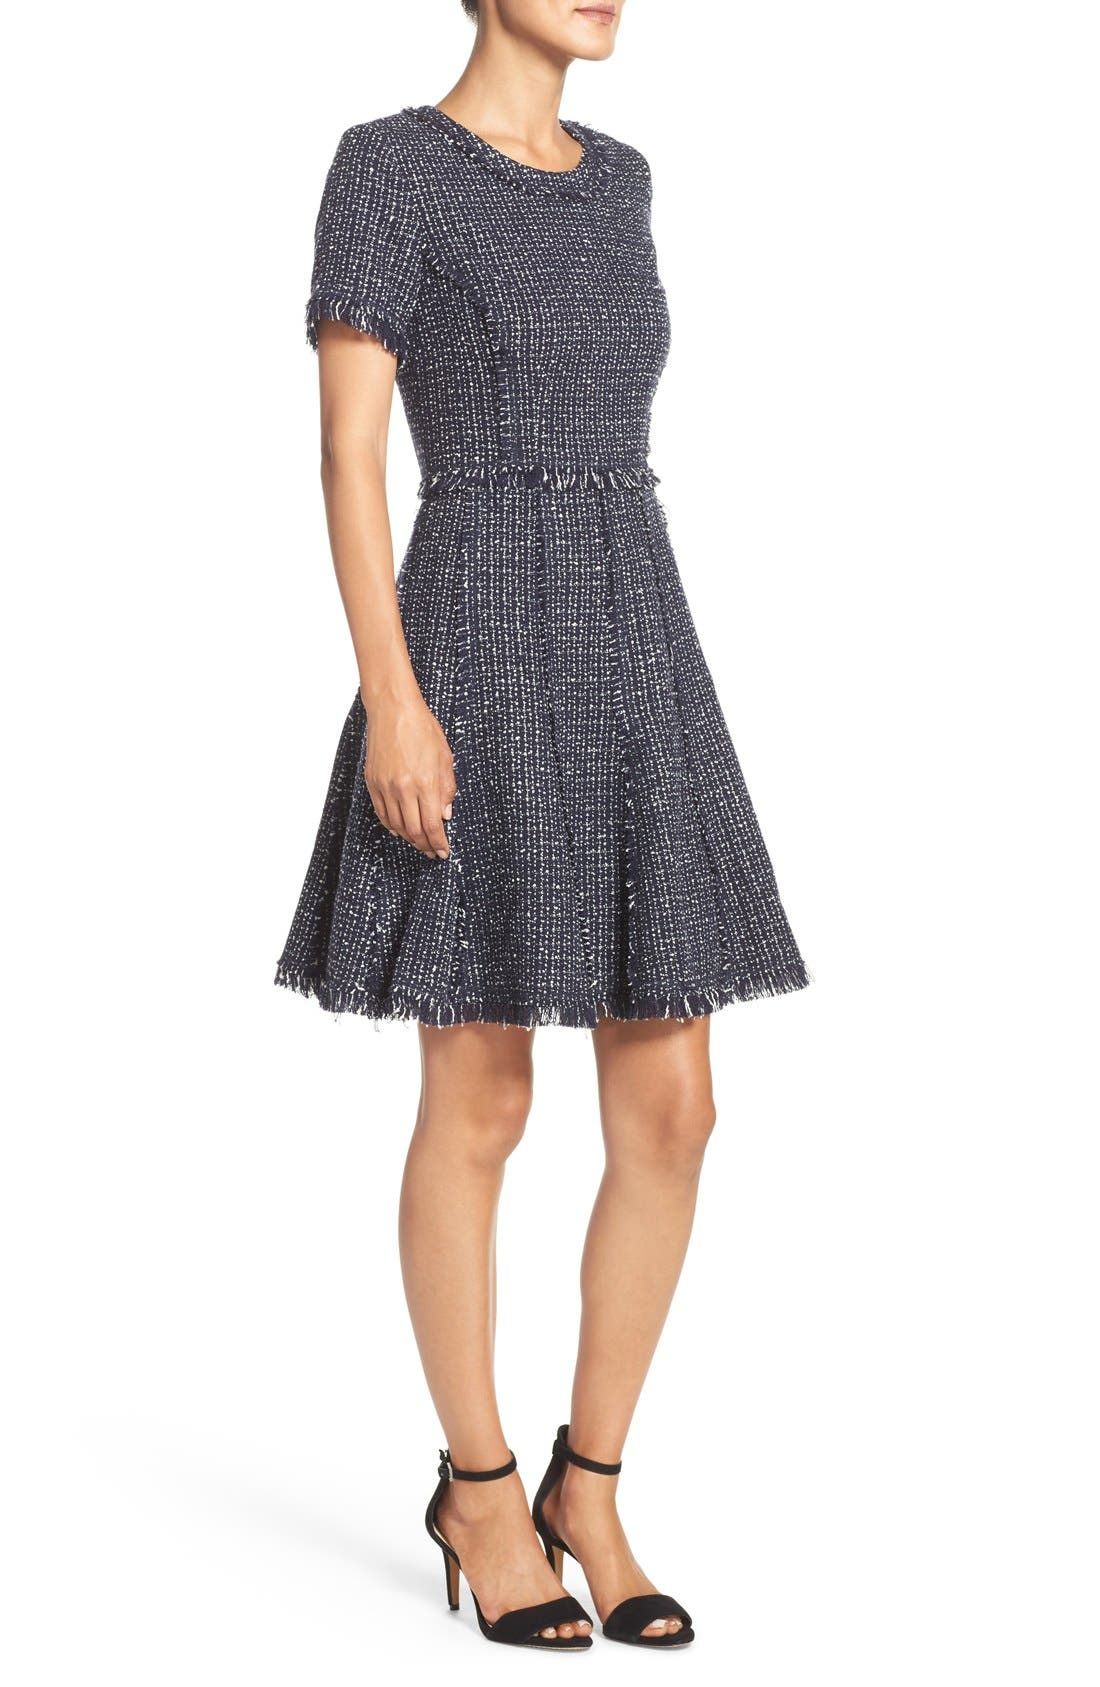 ELIZA J, Tweed Fit & Flare Dress, Alternate thumbnail 5, color, 410